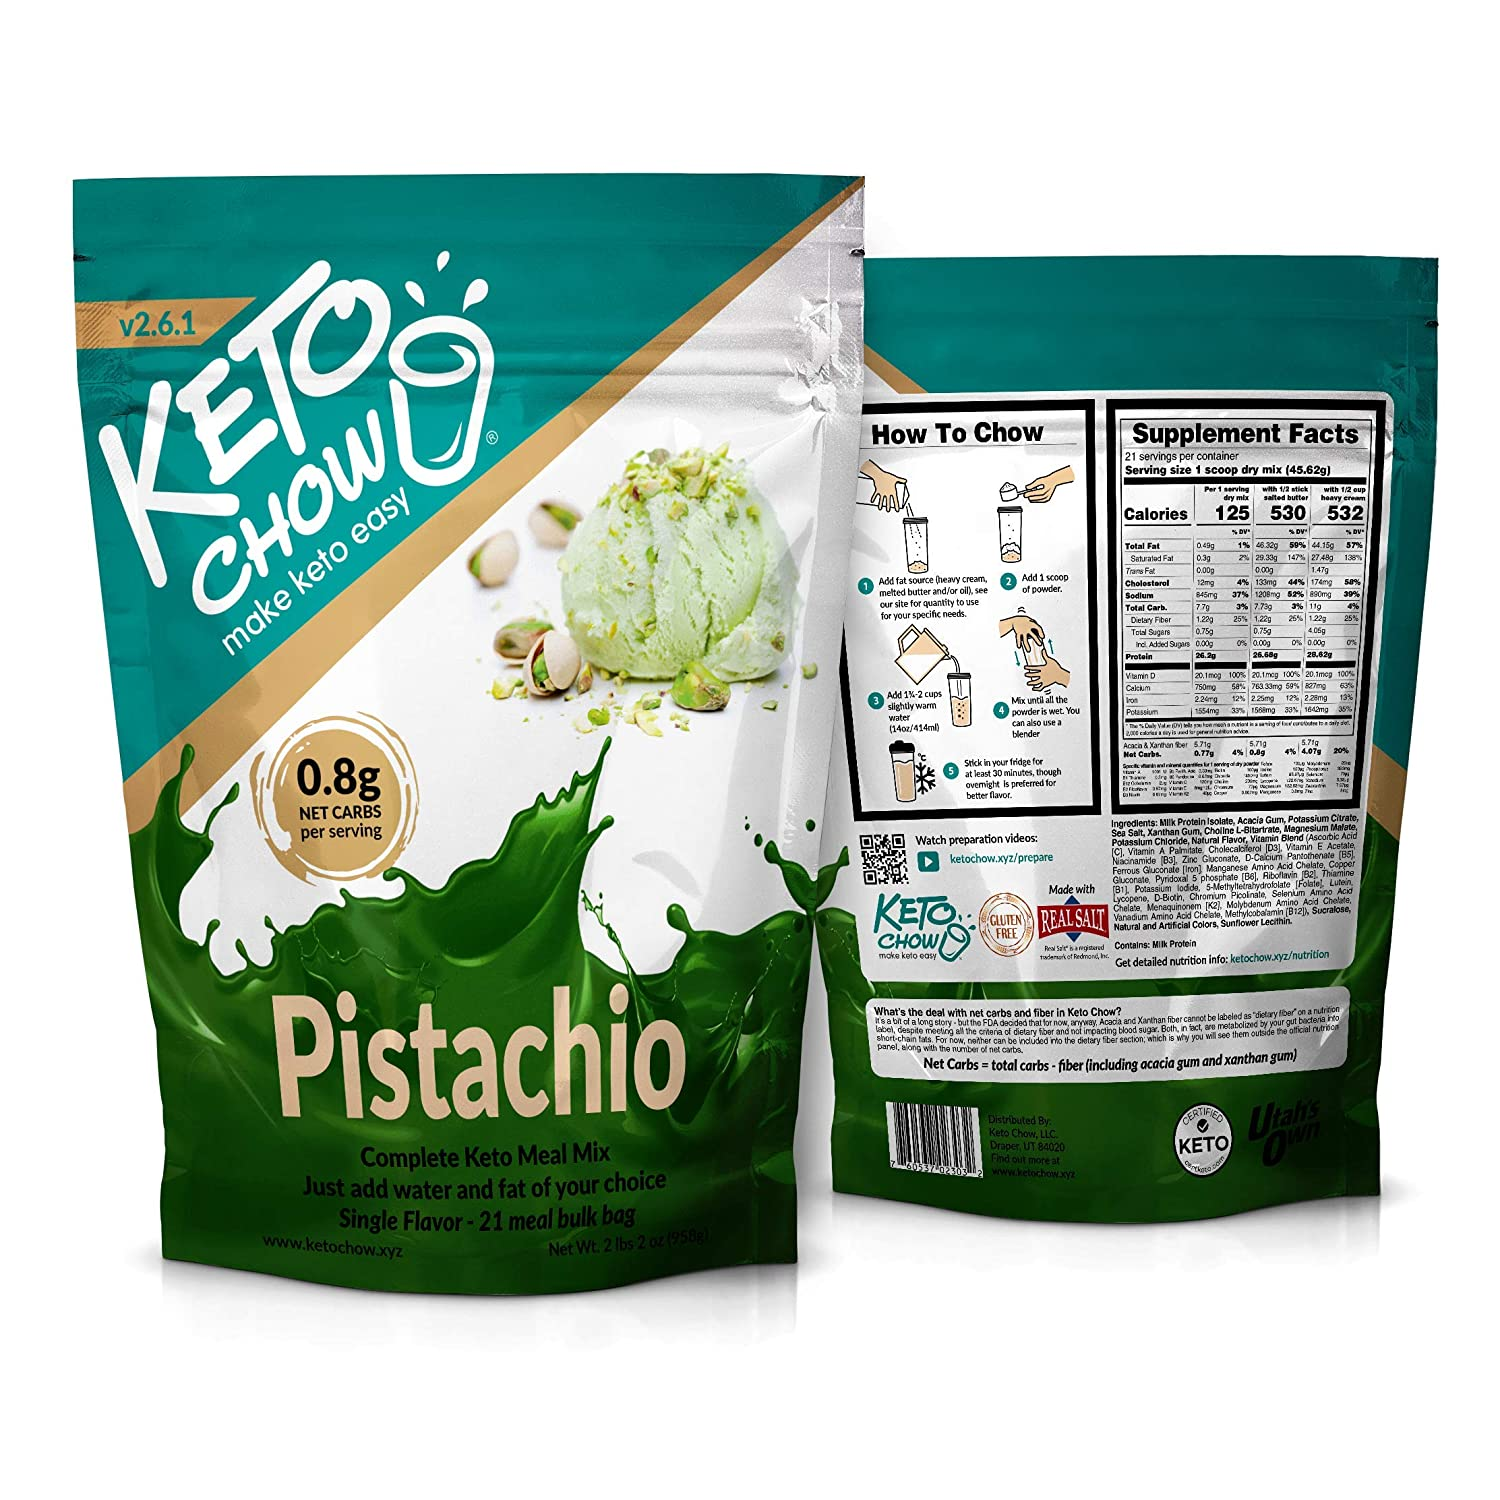 Keto Chow | Keto Meal Replacement Shake | Nutritionally Complete | Low Carb | Delicious Easy Meal Substitute | You Choose The Fat | Pistachio